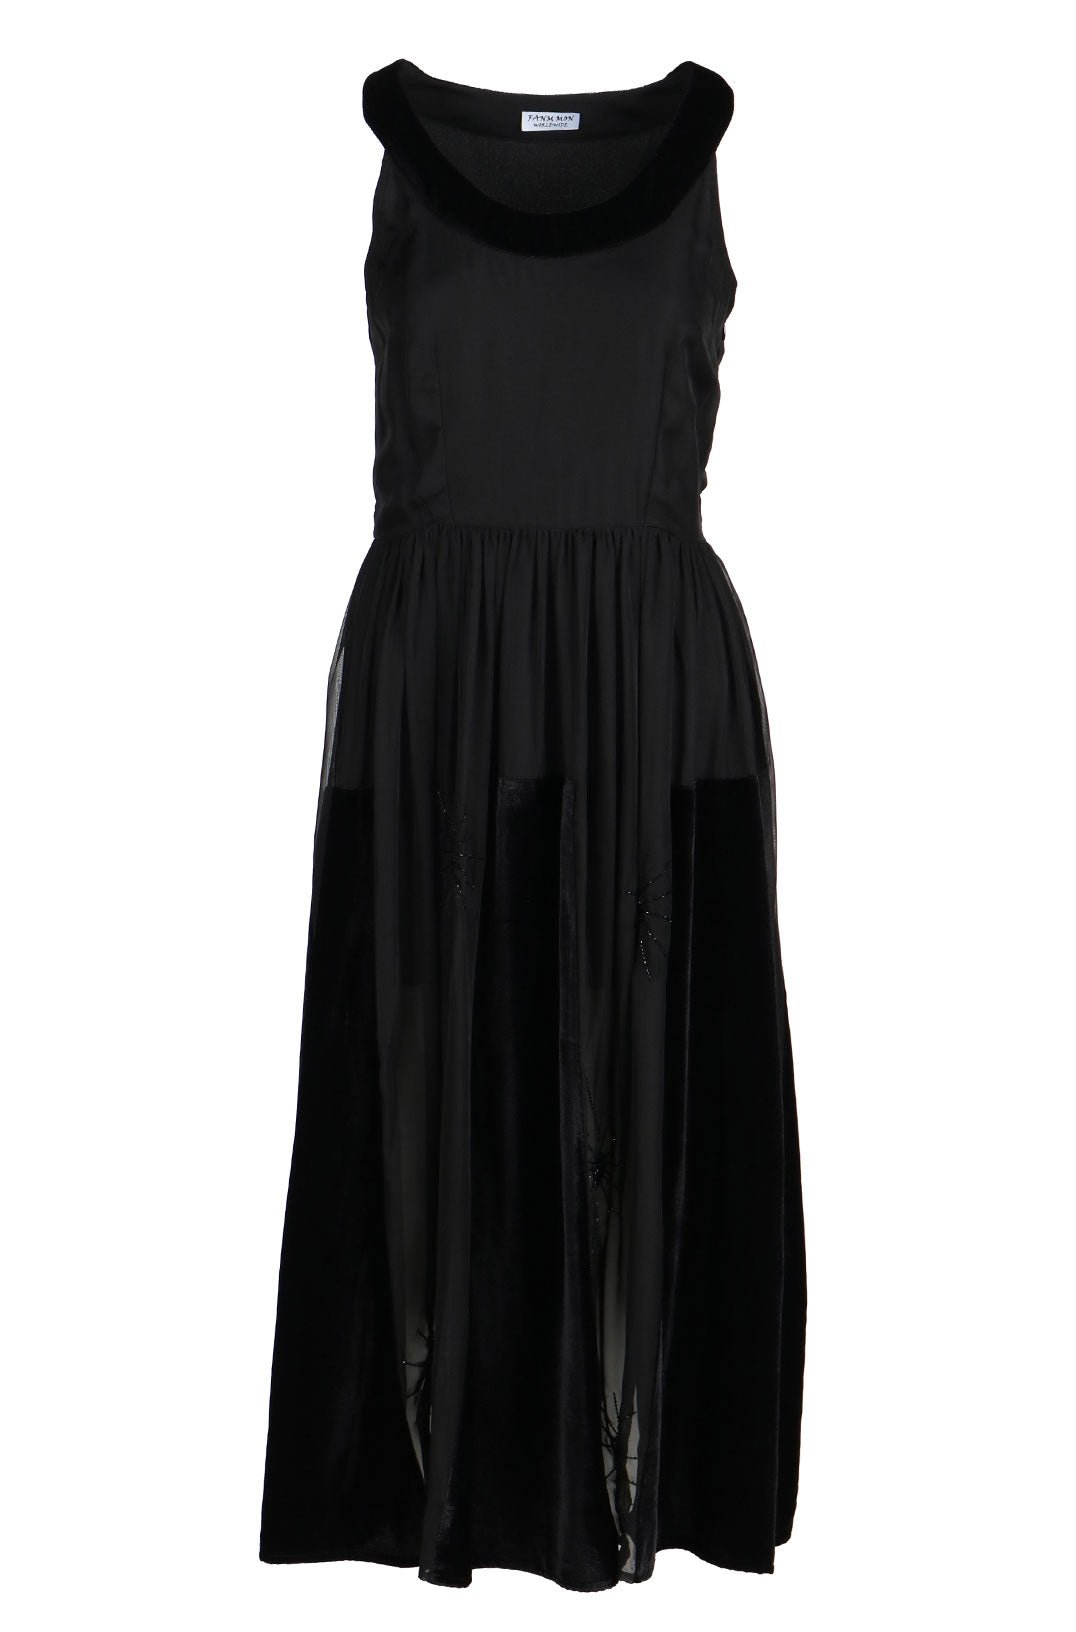 Fanm Mon ROND Black Chiffon Velvet Handmade Hand Beaded Midi Dress